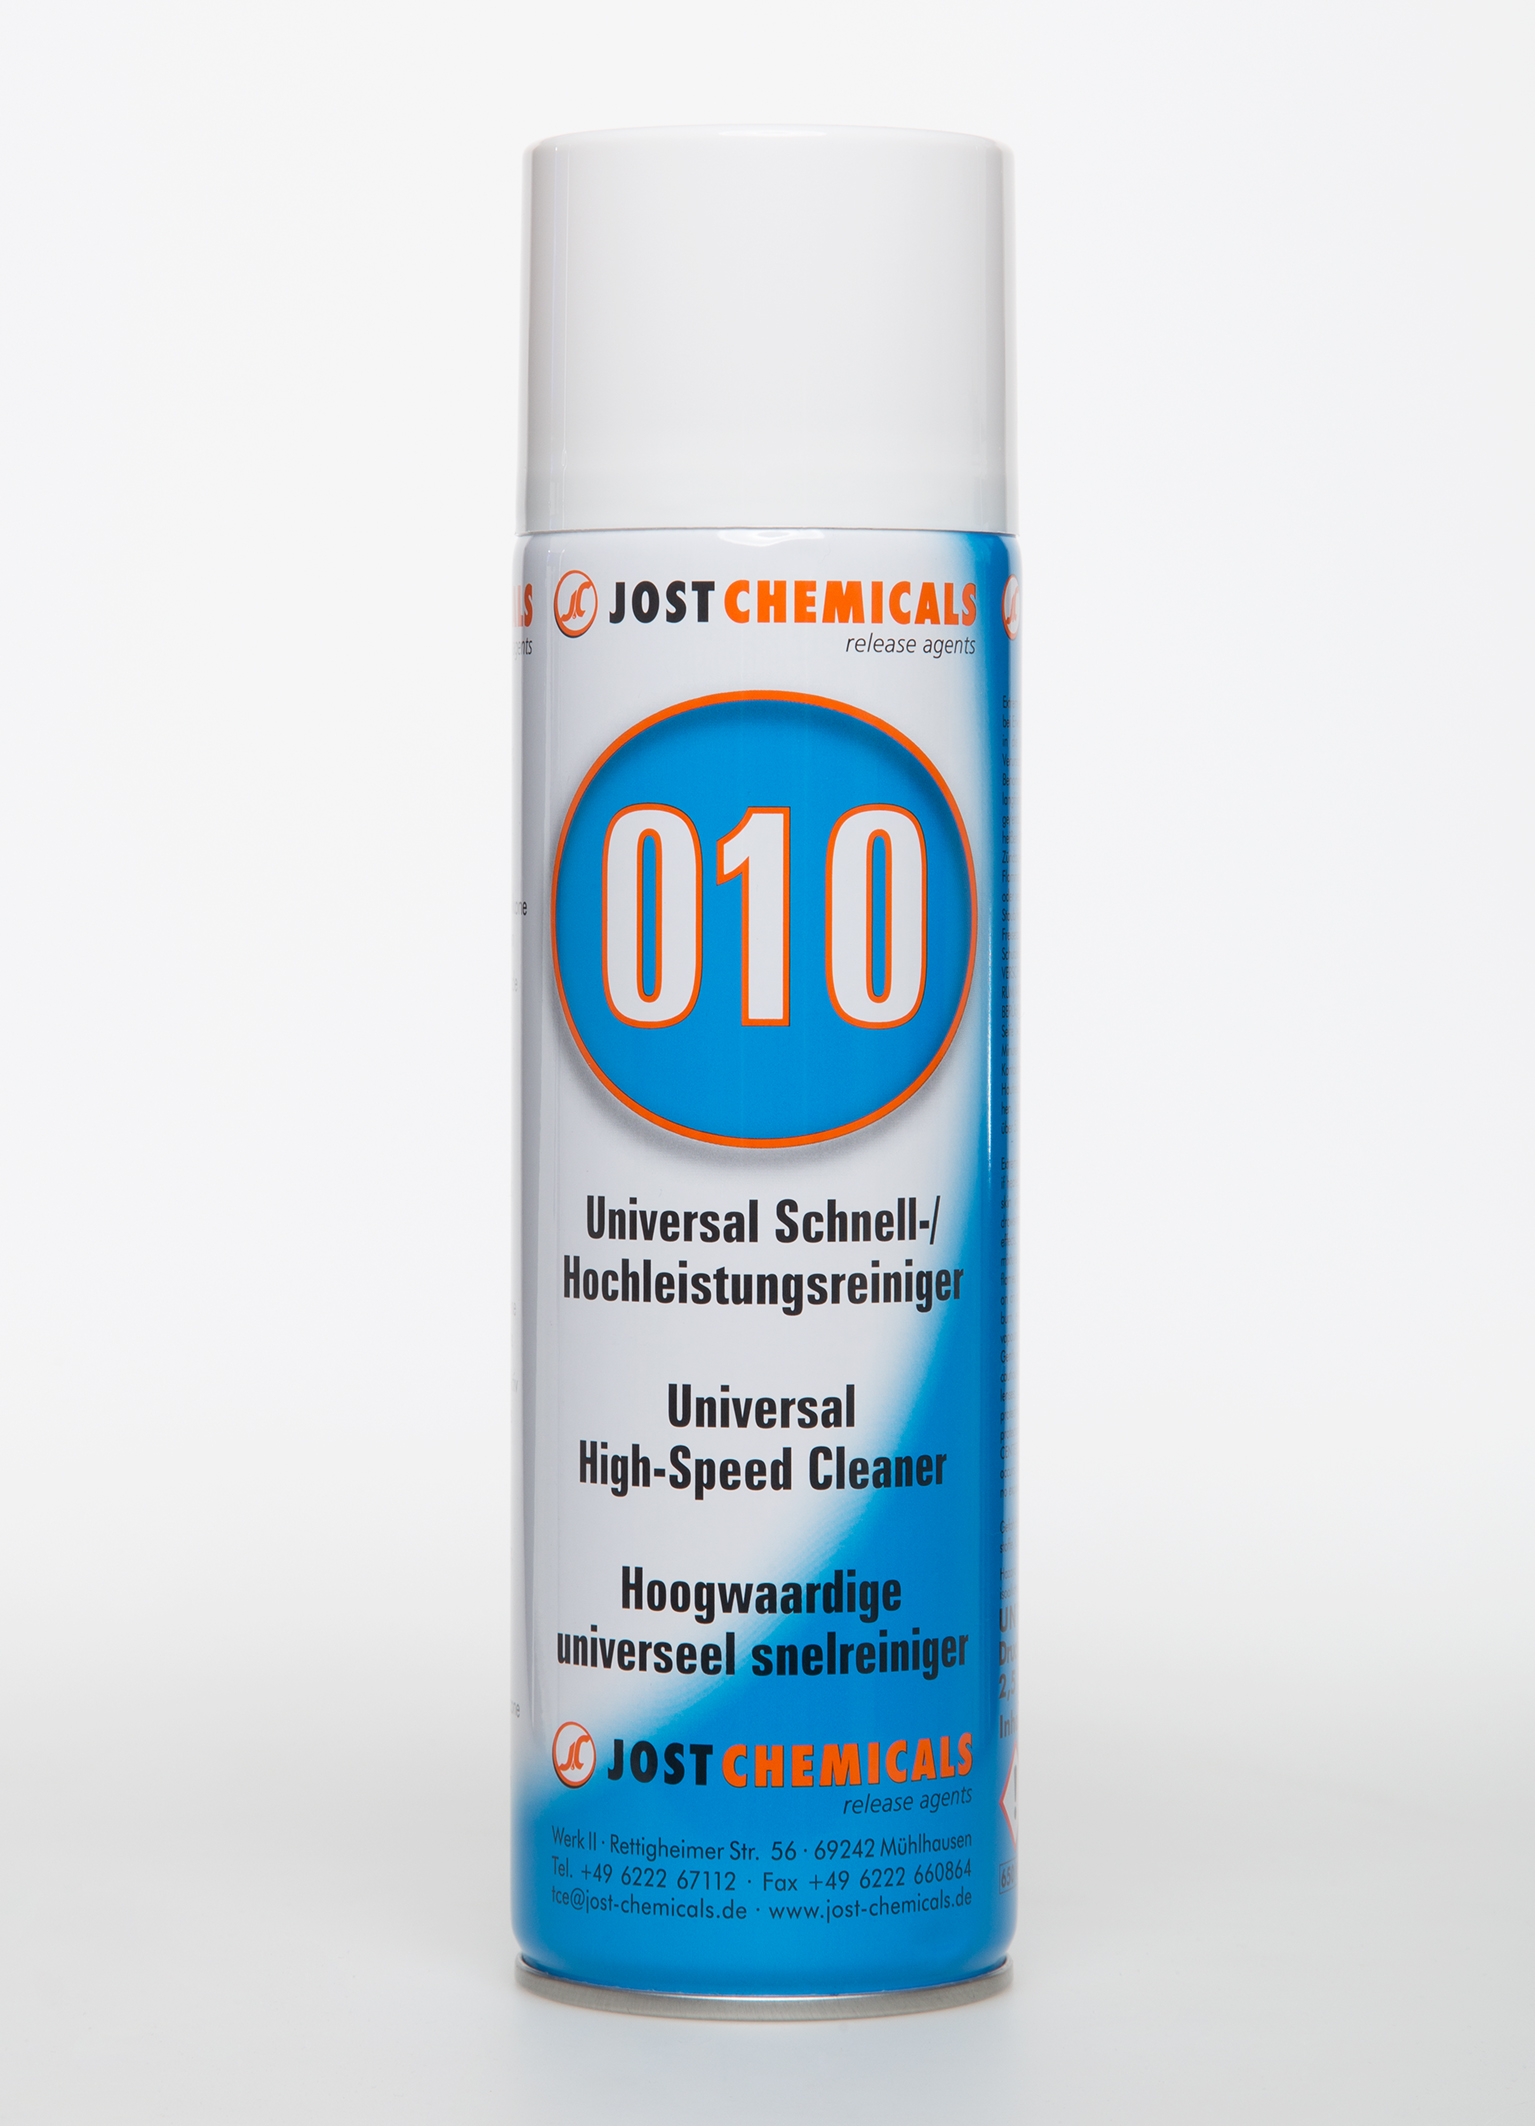 TCE FLUID 010 - Jost Chemicals GmbH